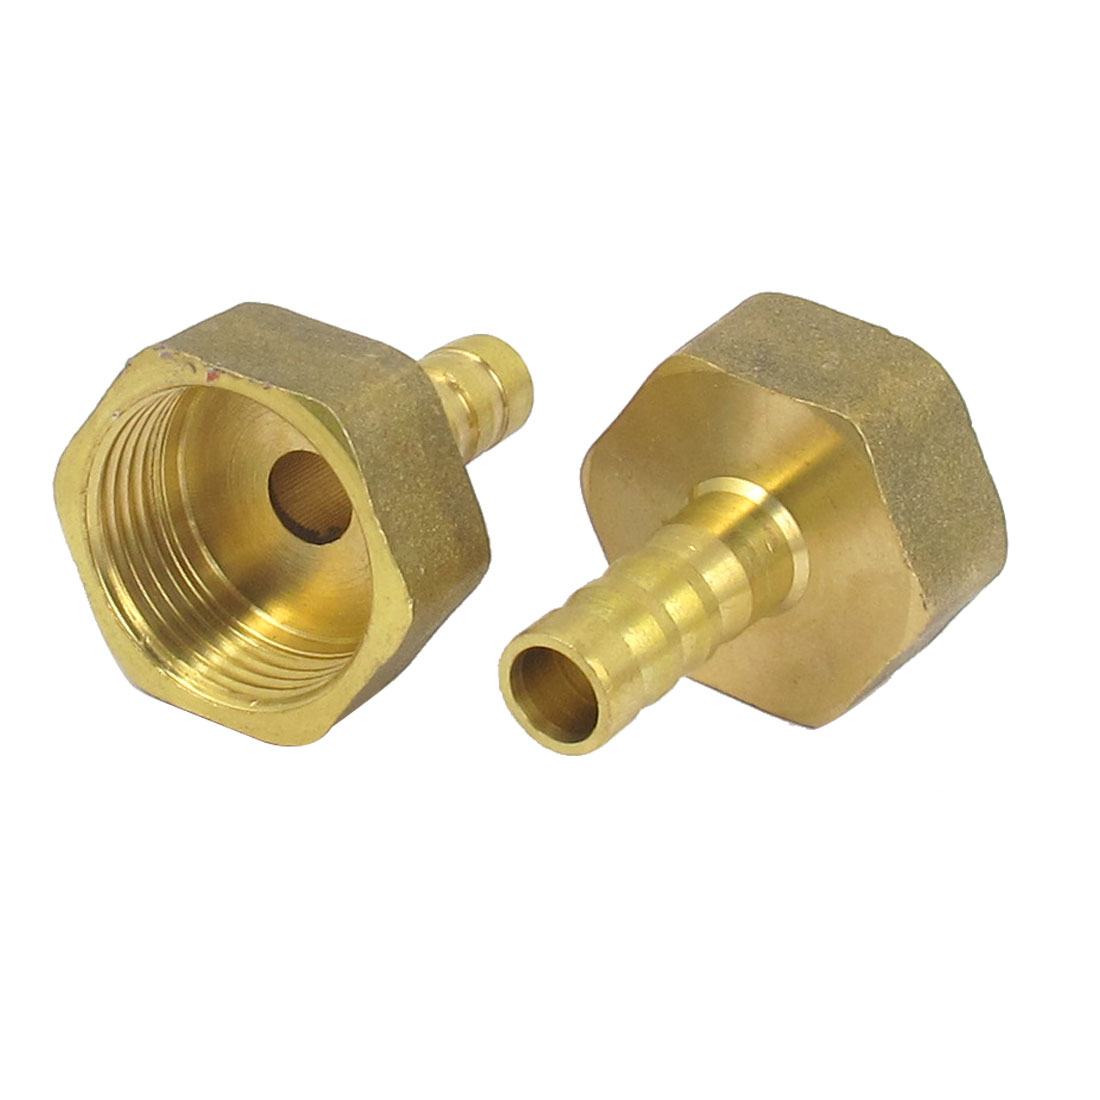 Brass 10mm Hose Barb 3/4BSP Female Thread Quick Joint Connector Adapter 2PCS